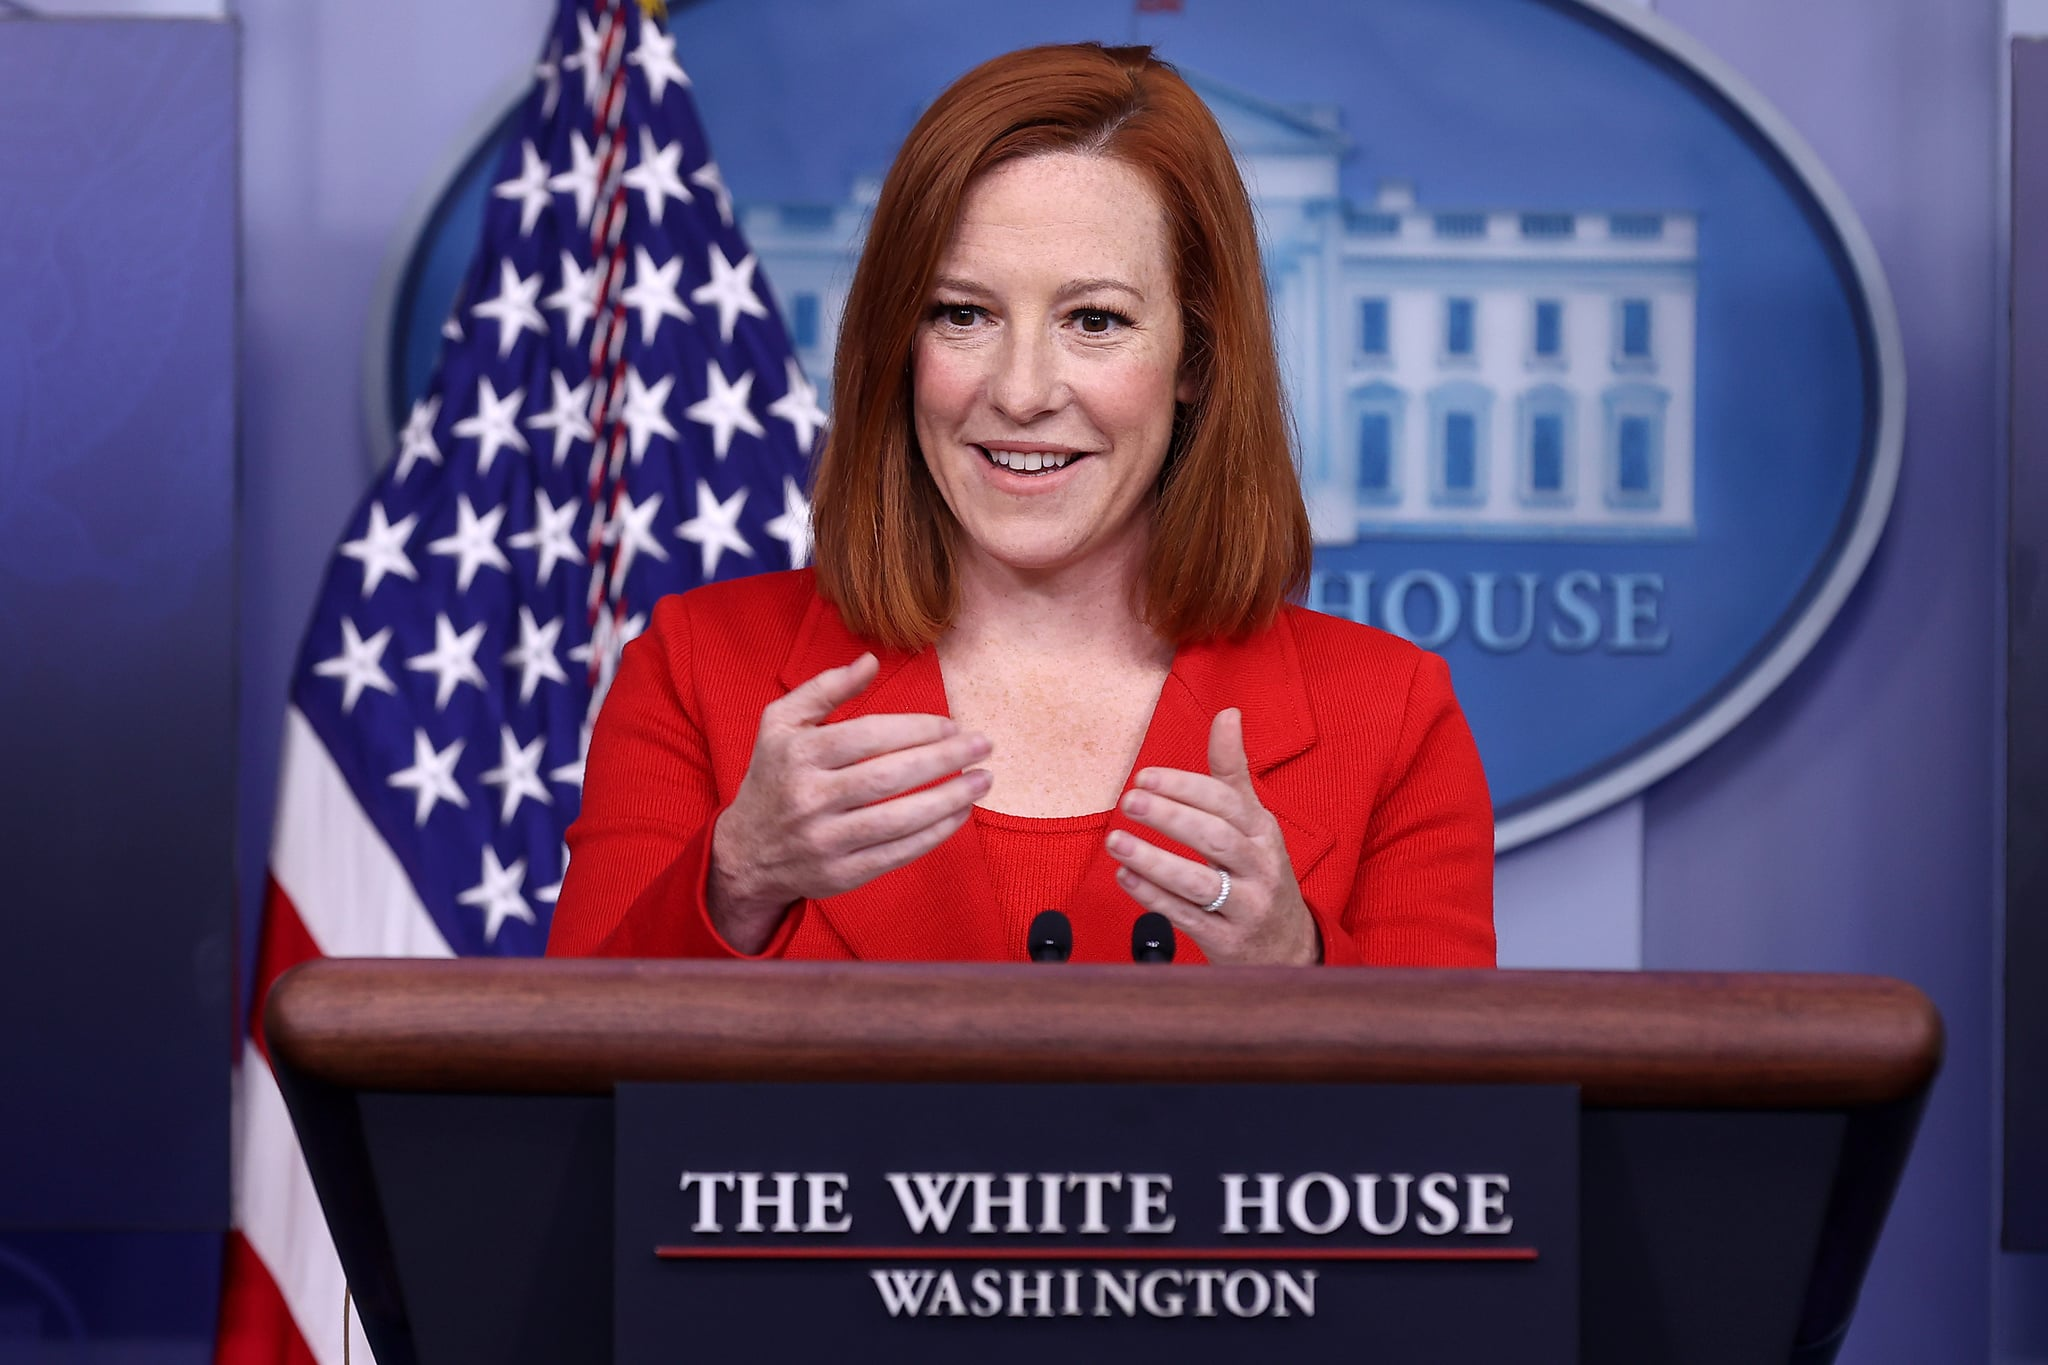 WASHINGTON, DC - APRIL 12: White House Press Secretary Jen Psaki talks to reporters during the daily news conference in the Brady Press Briefing Room at the White House on April 12, 2021 in Washington, DC. Psaki answered questions about immigration on the southern border, the ongoing semiconductor shortage, the president's infrastructure plan and other subjects.  (Photo by Chip Somodevilla/Getty Images)